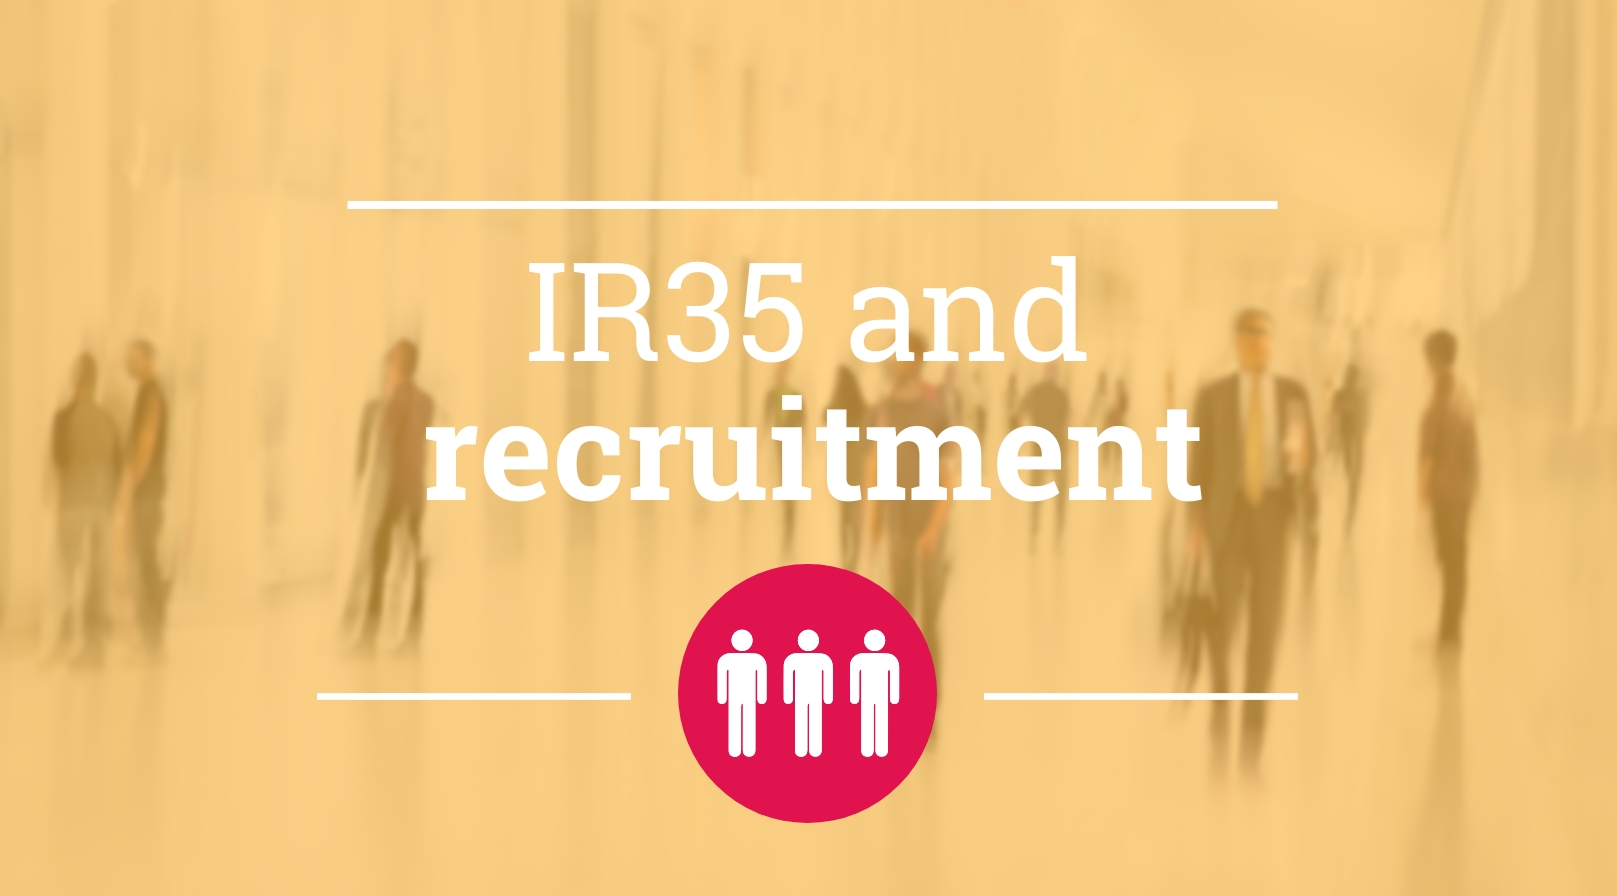 IR35 and recruitment